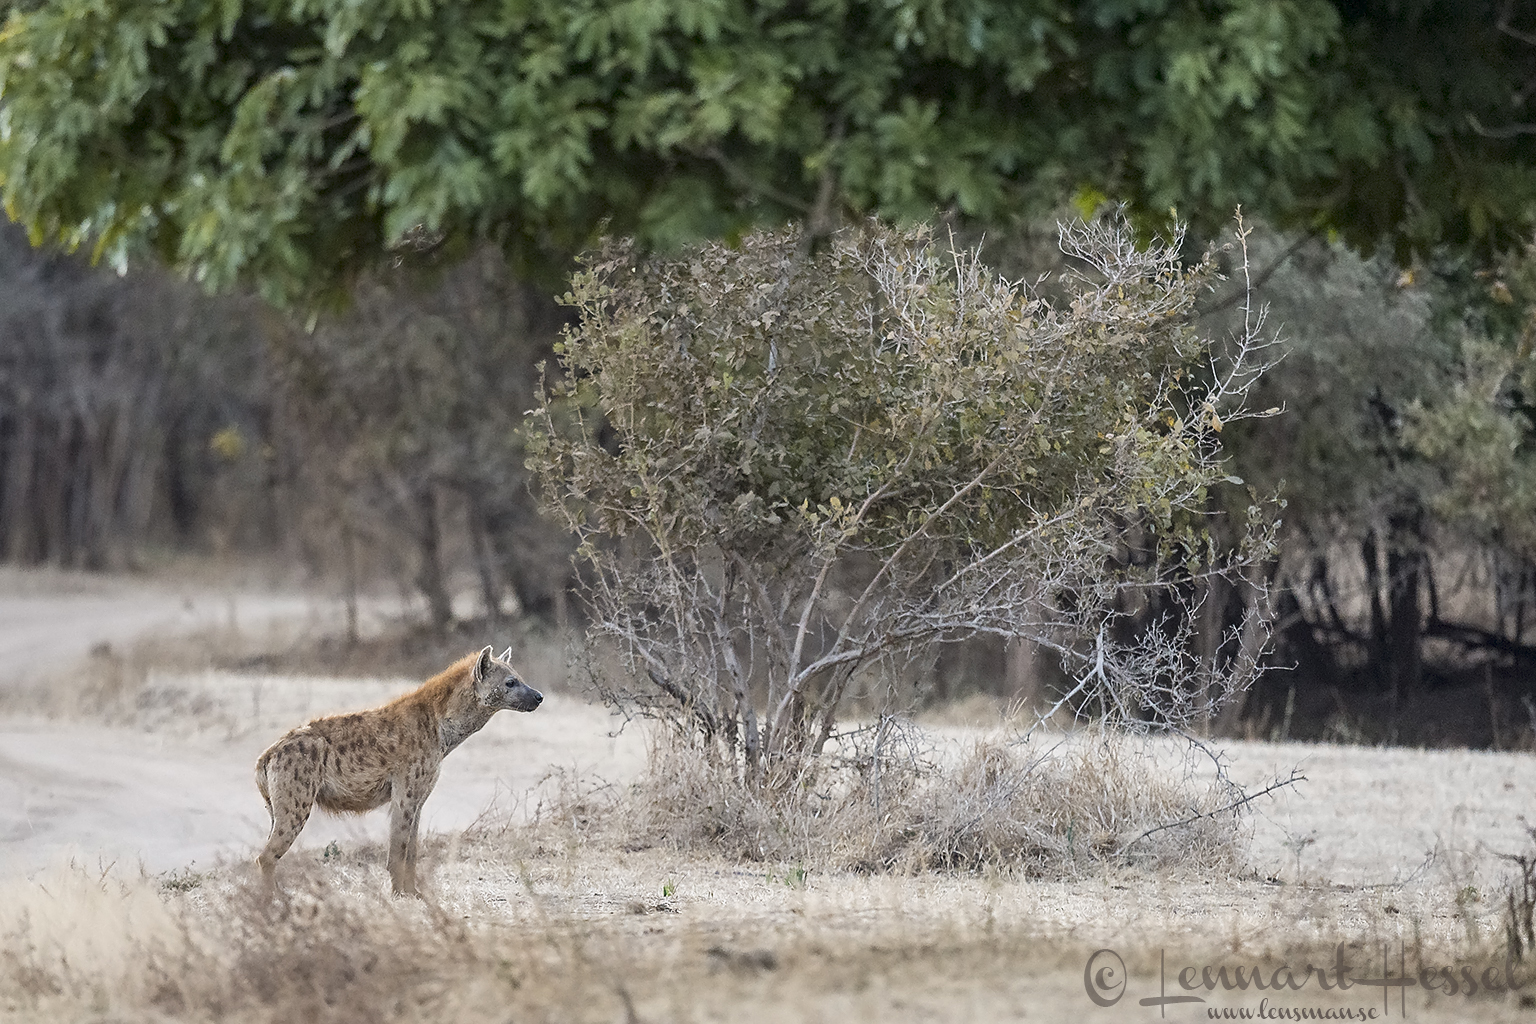 Spotted Hyena seen on safari in Mana Pools